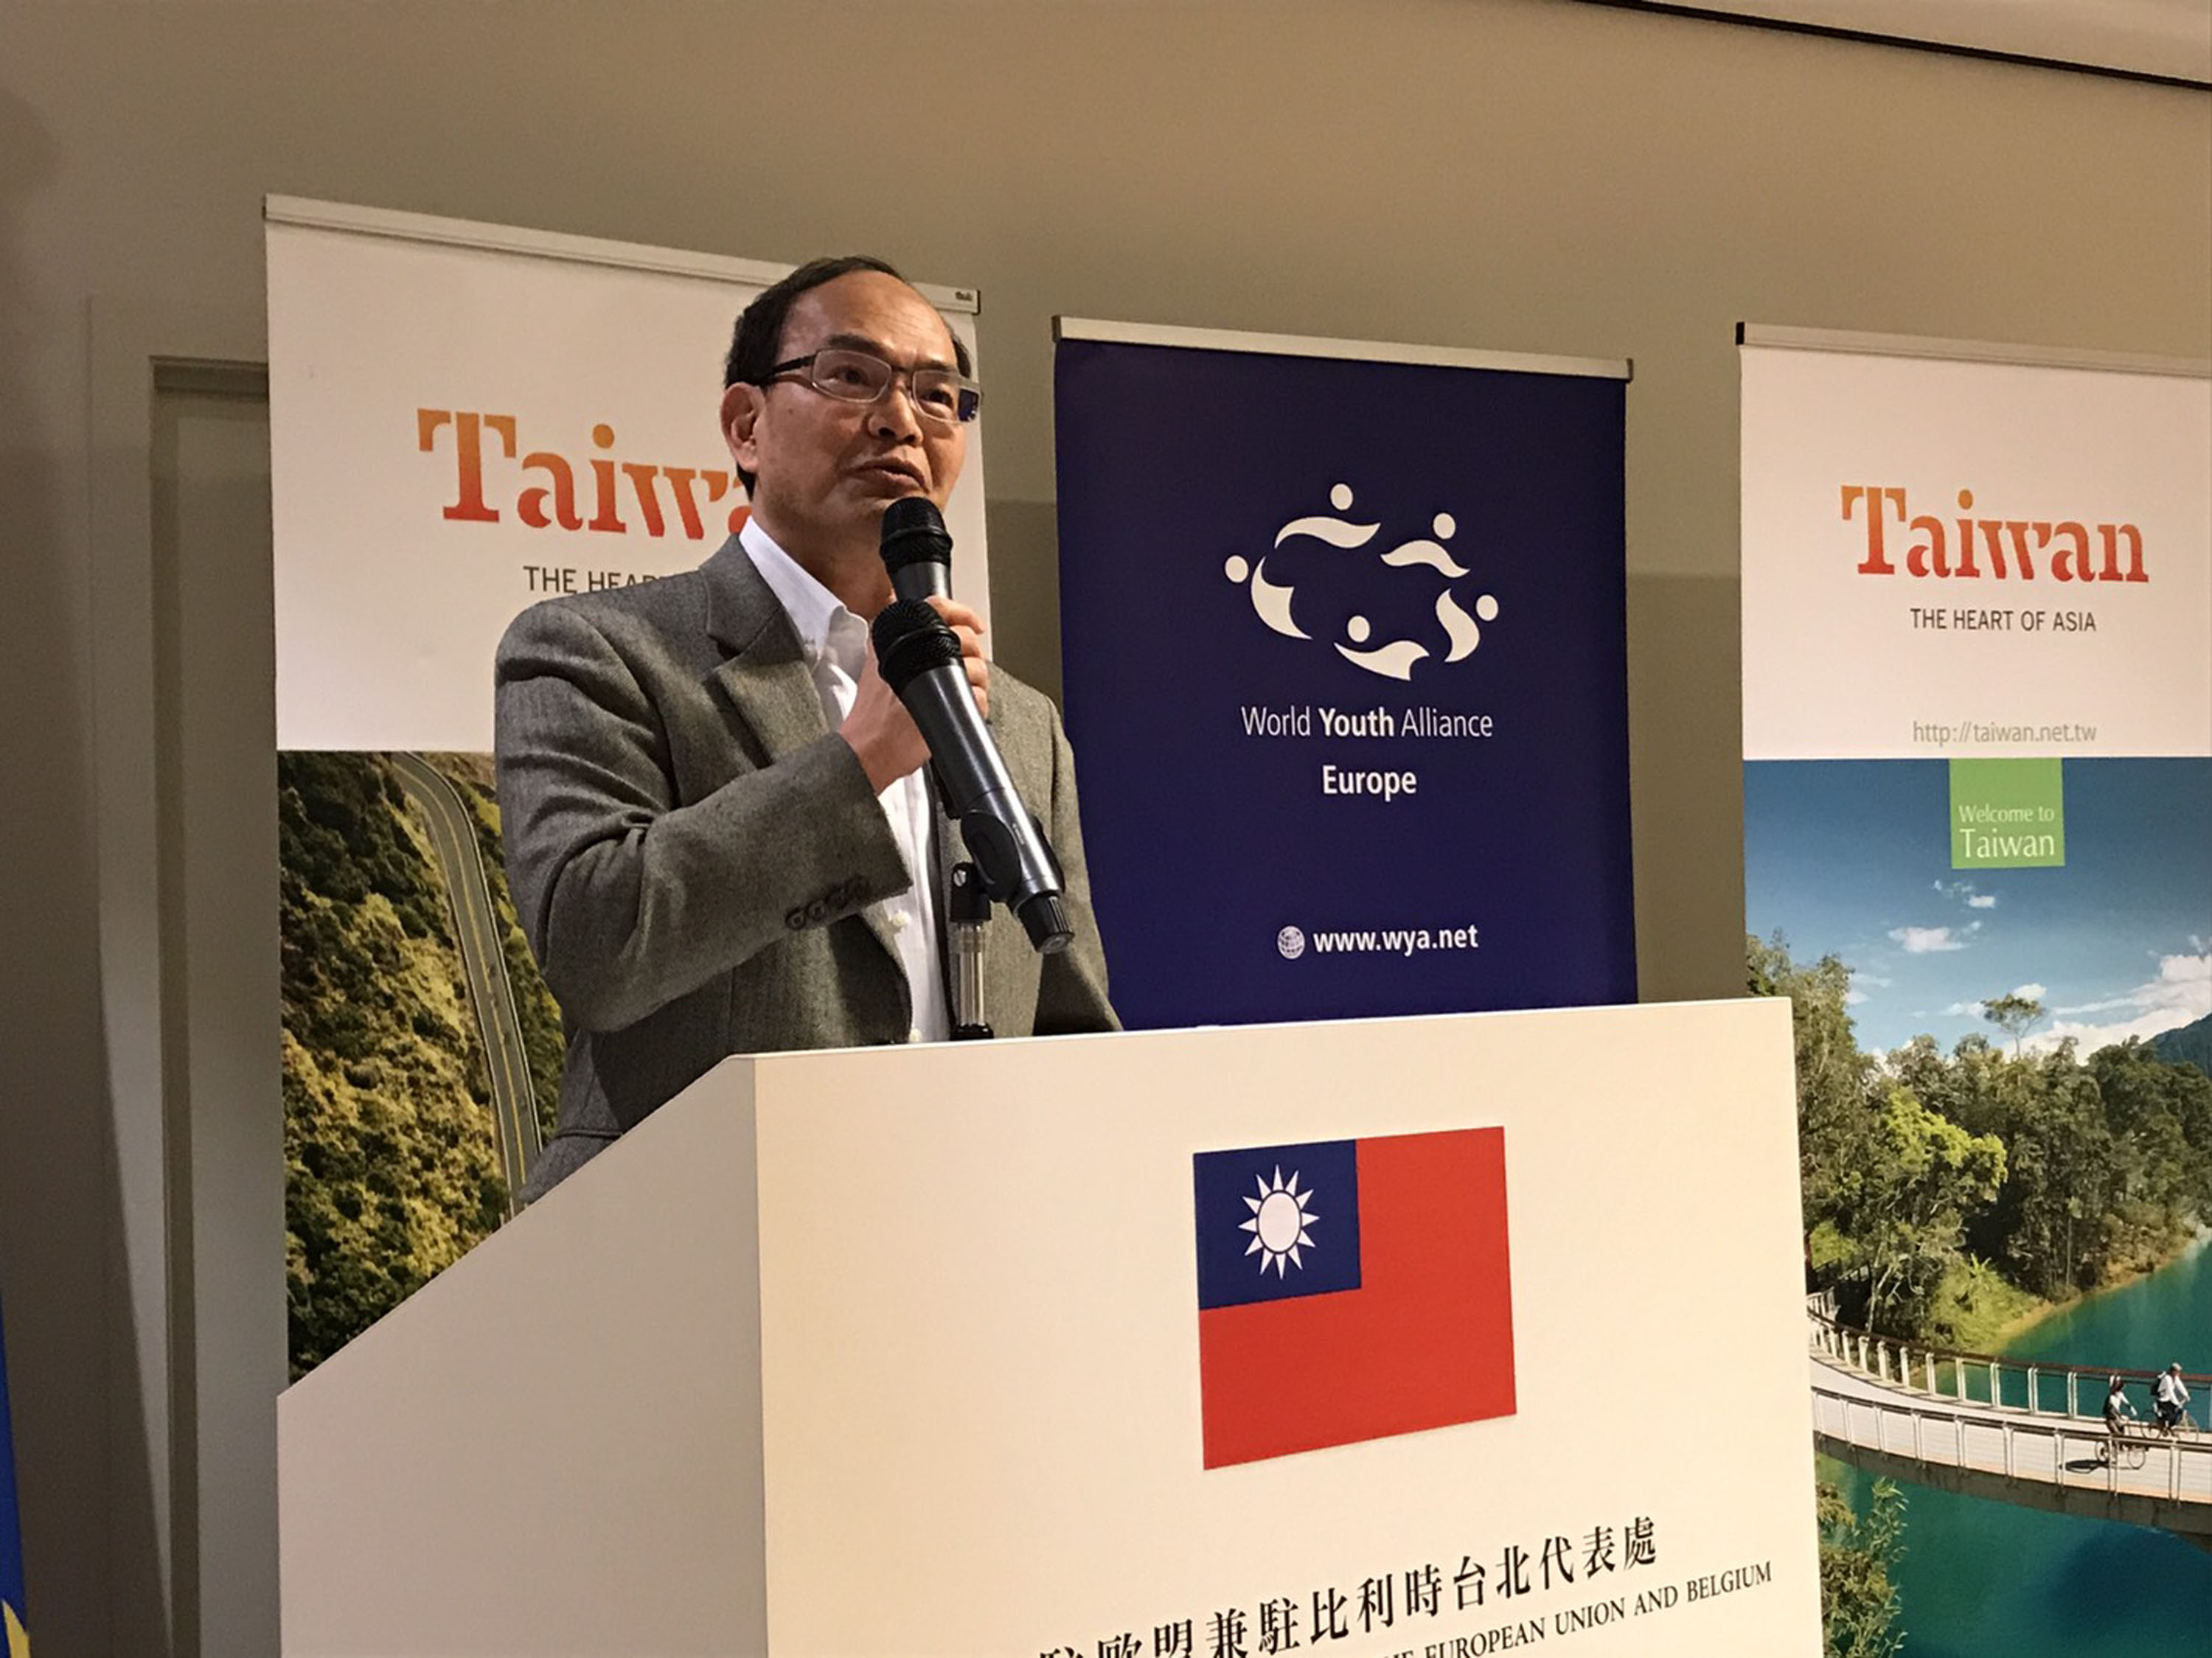 Harry Tseng speaking at World Youth Alliance Europe in 2017